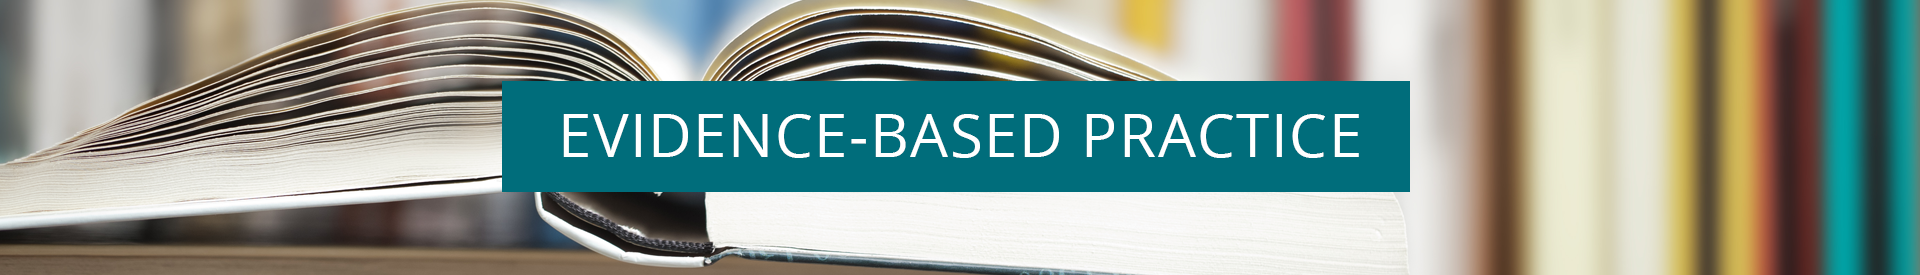 Evidence-Based Practice and Research